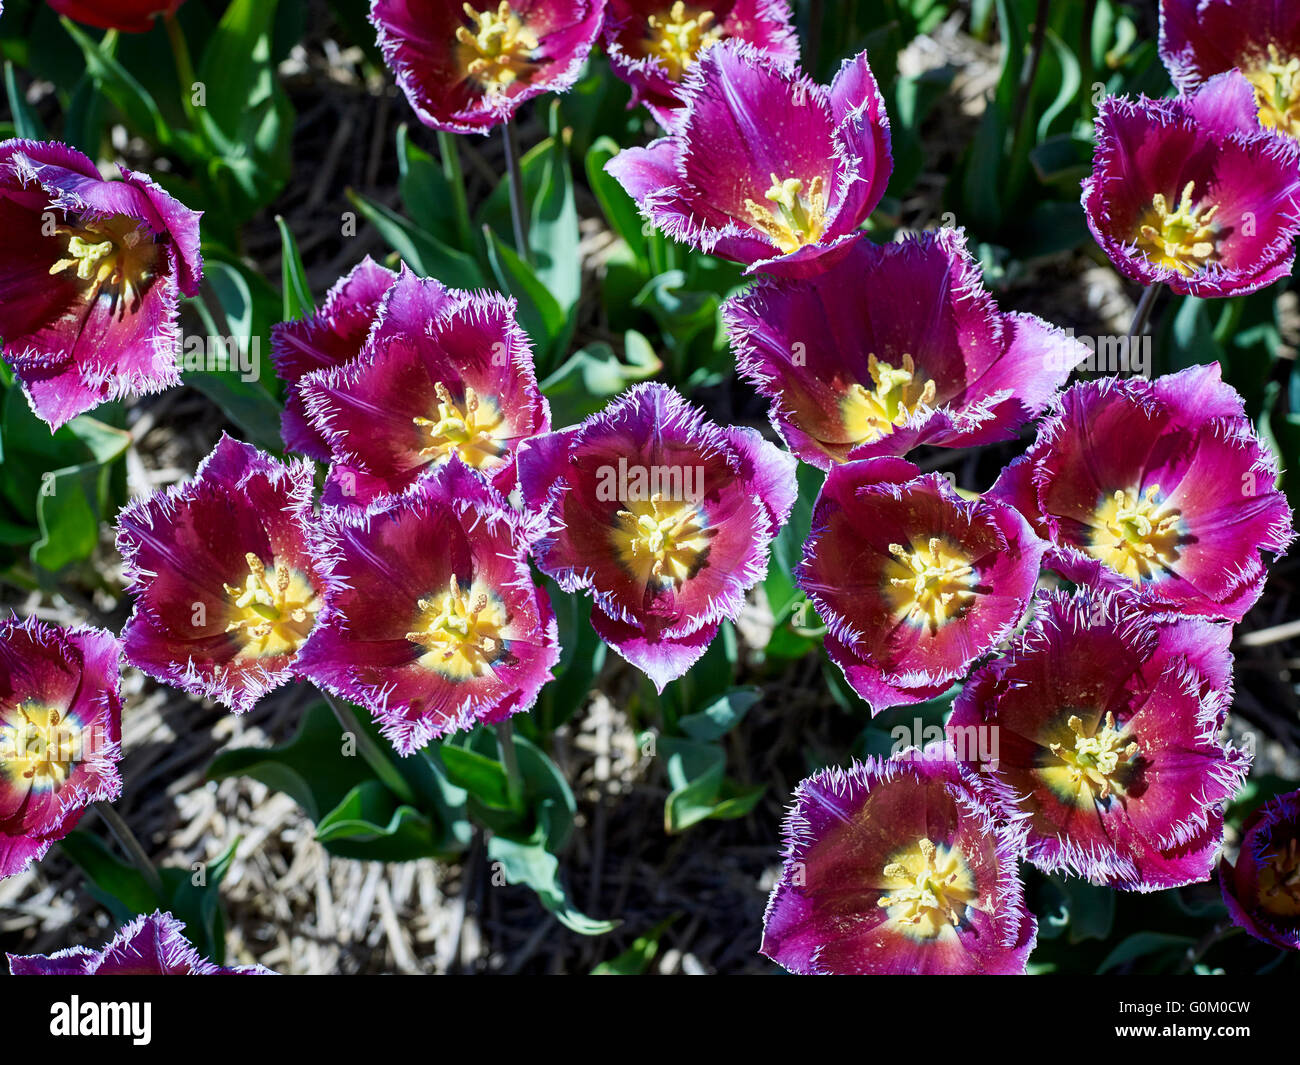 Tulips in the Netherlands near Noordwijk - Stock Image